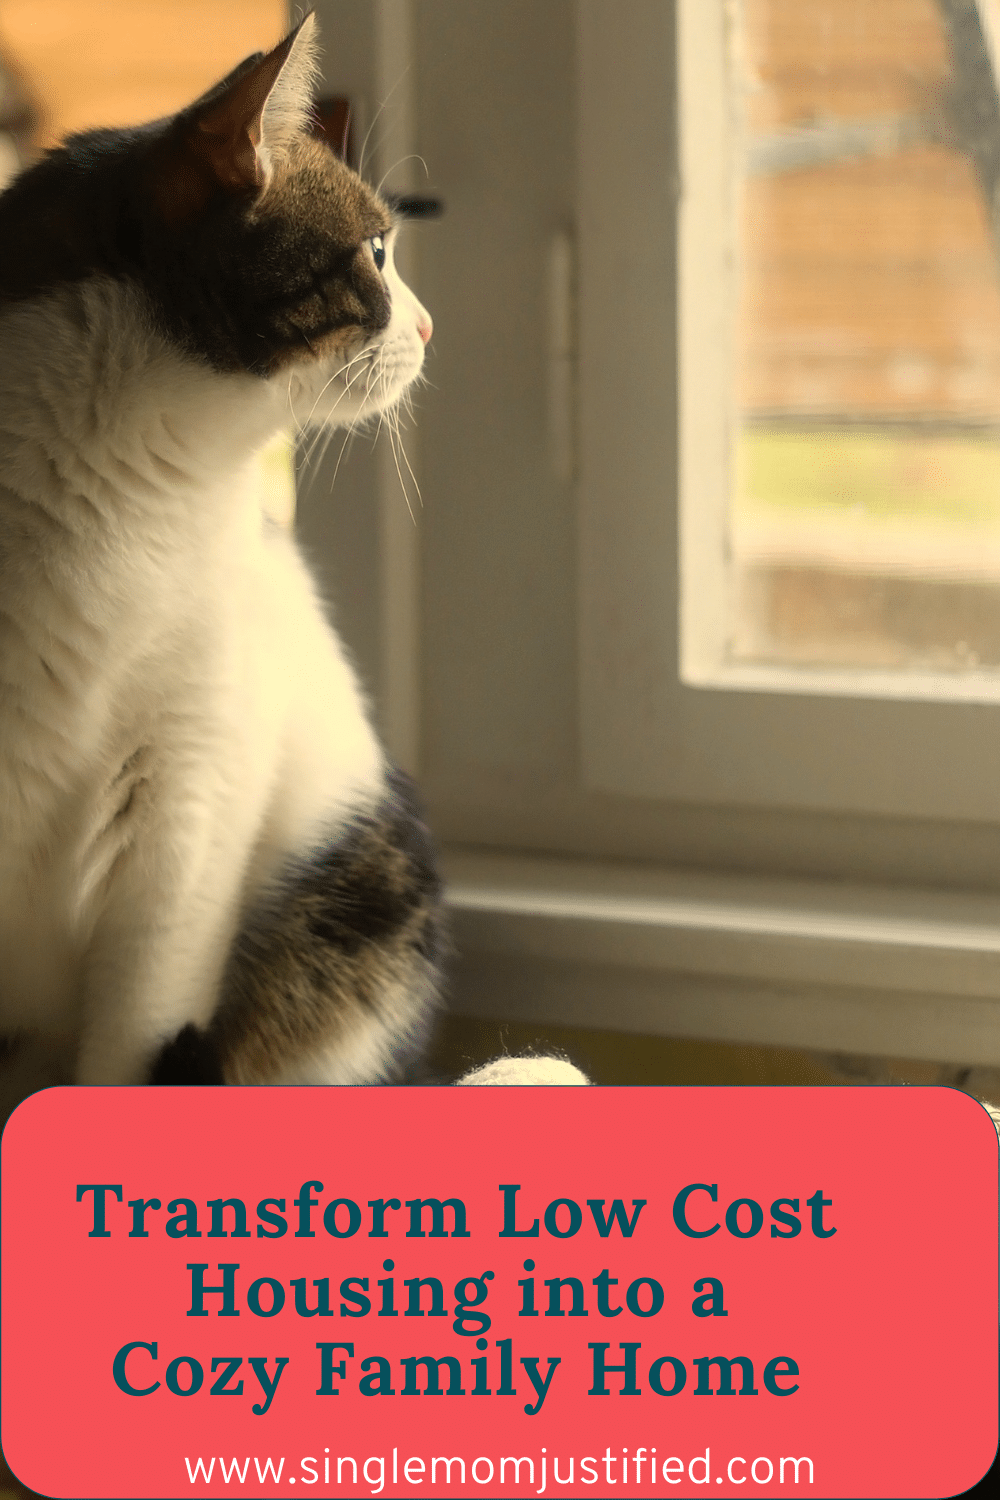 How to Make a Home Cozy On a Budget With Low Cost